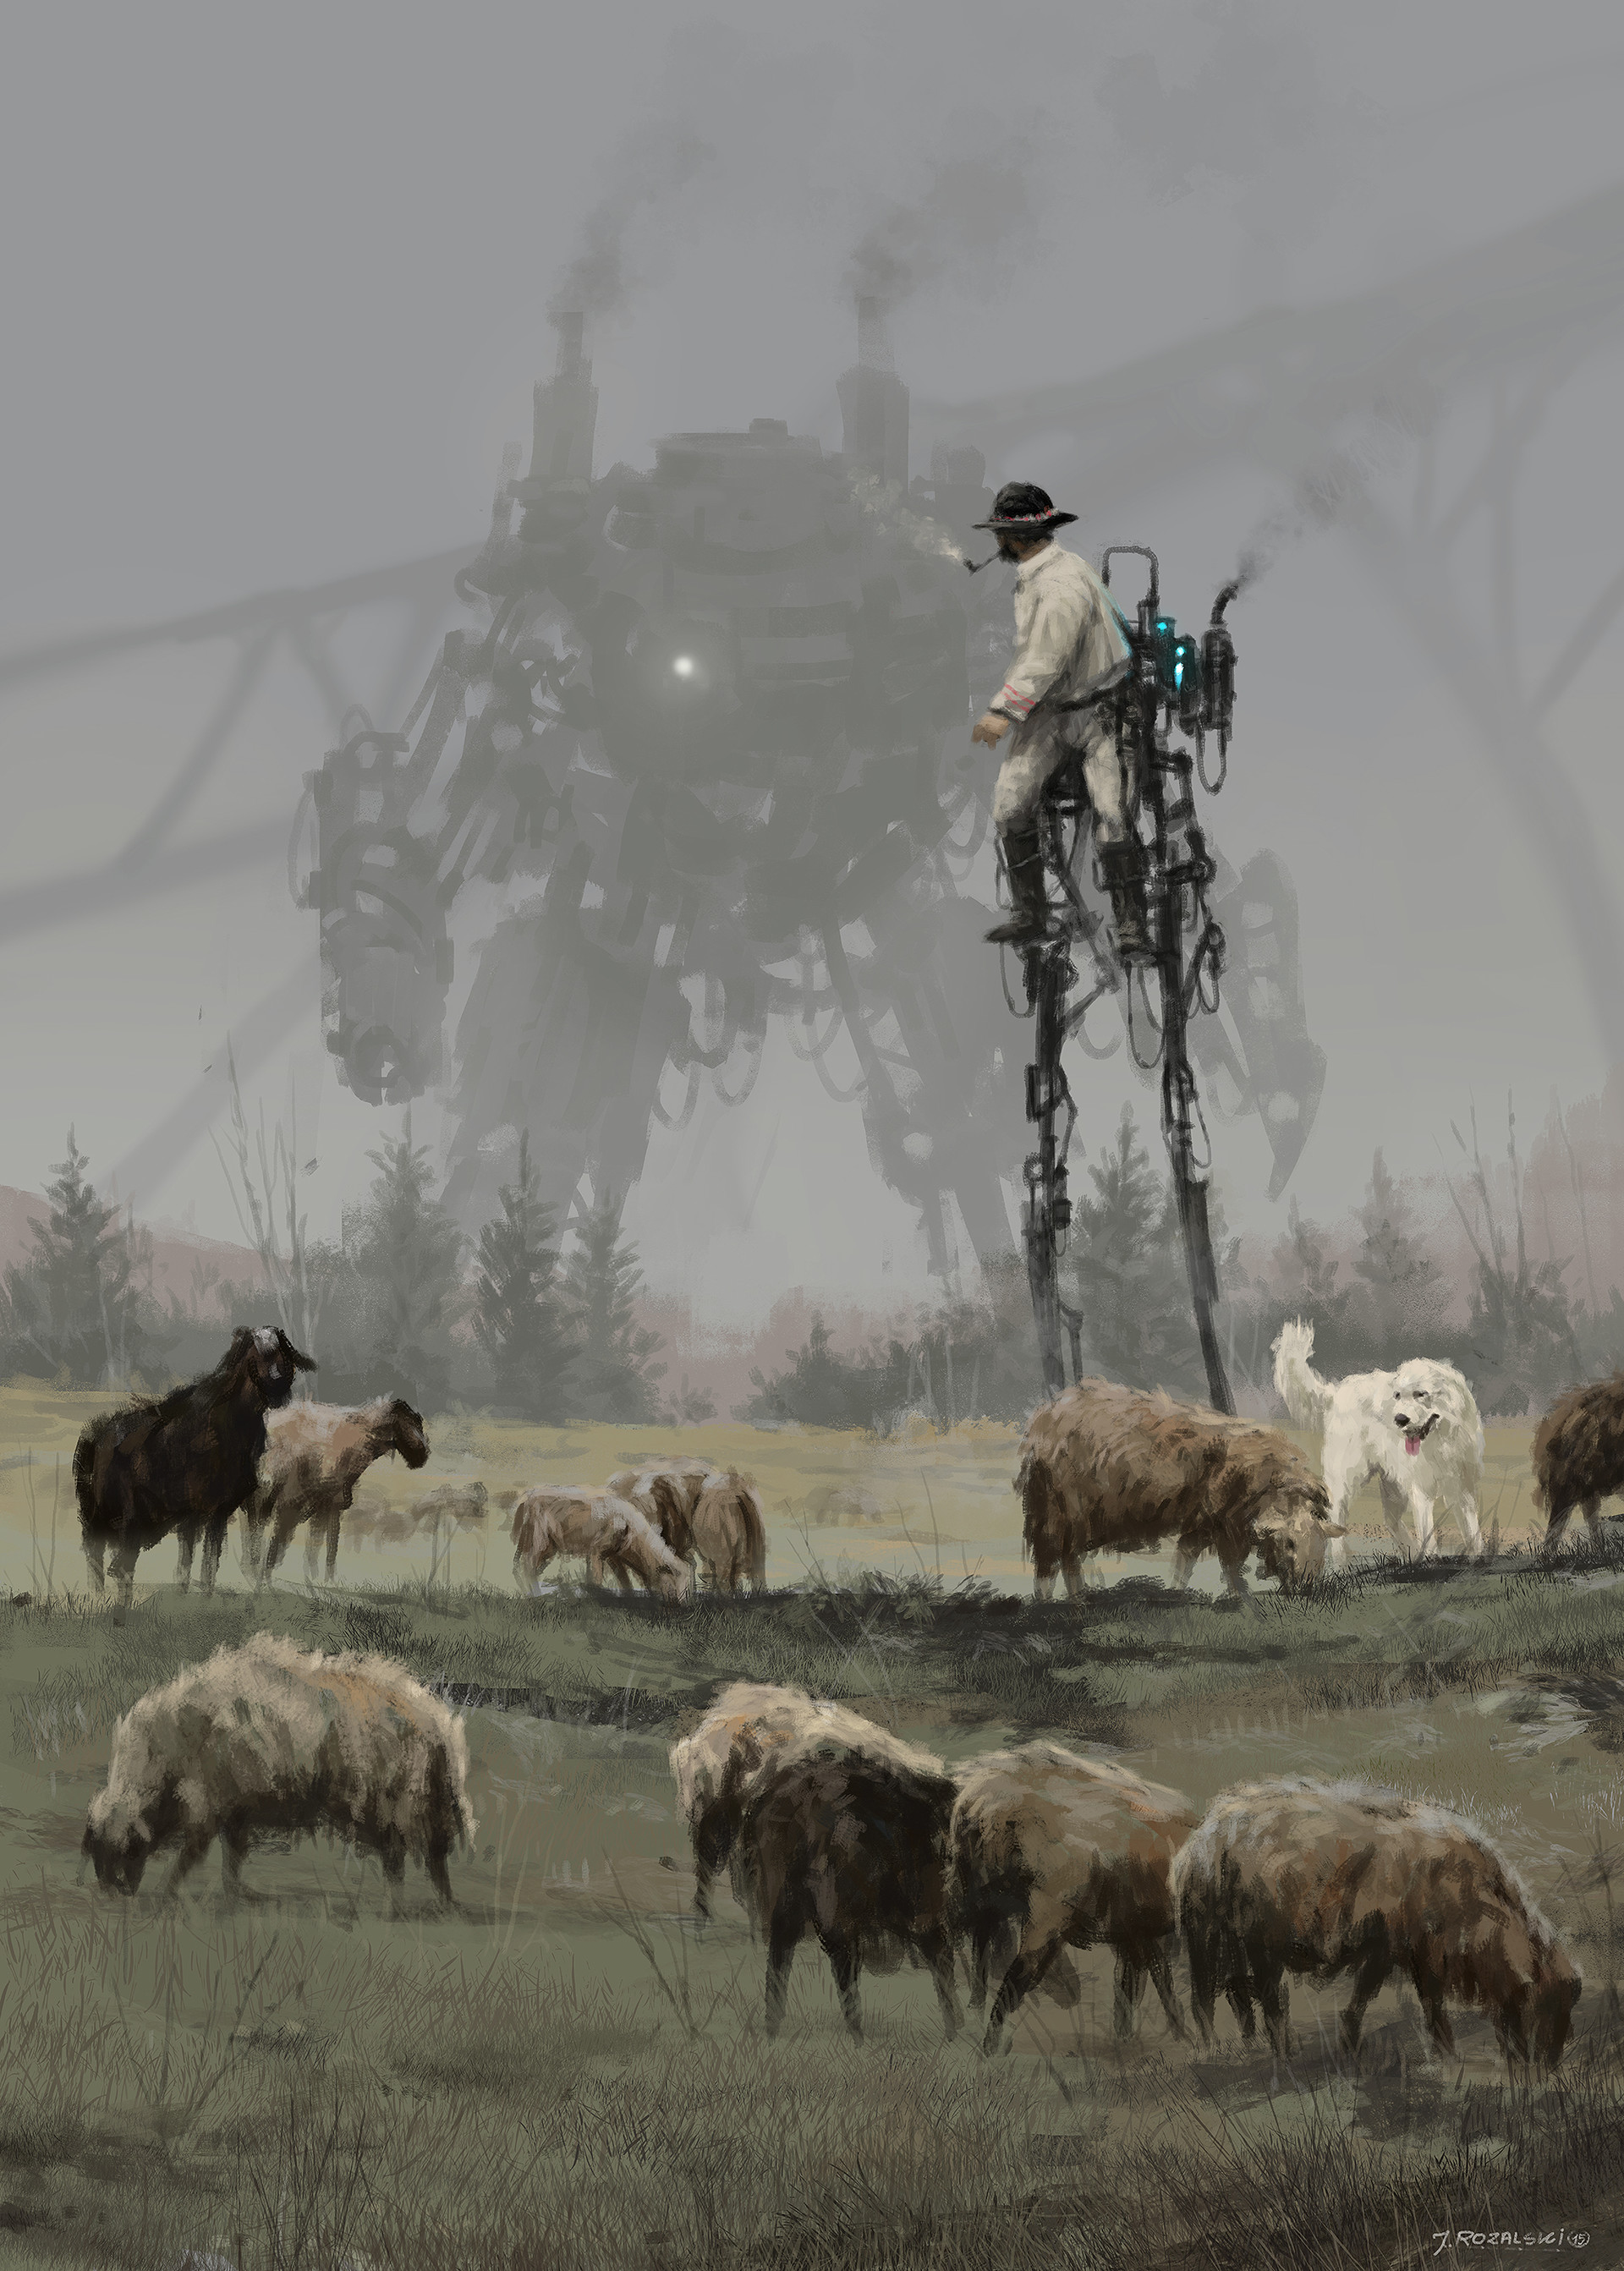 jakub-rozalski-sheep-walker-s